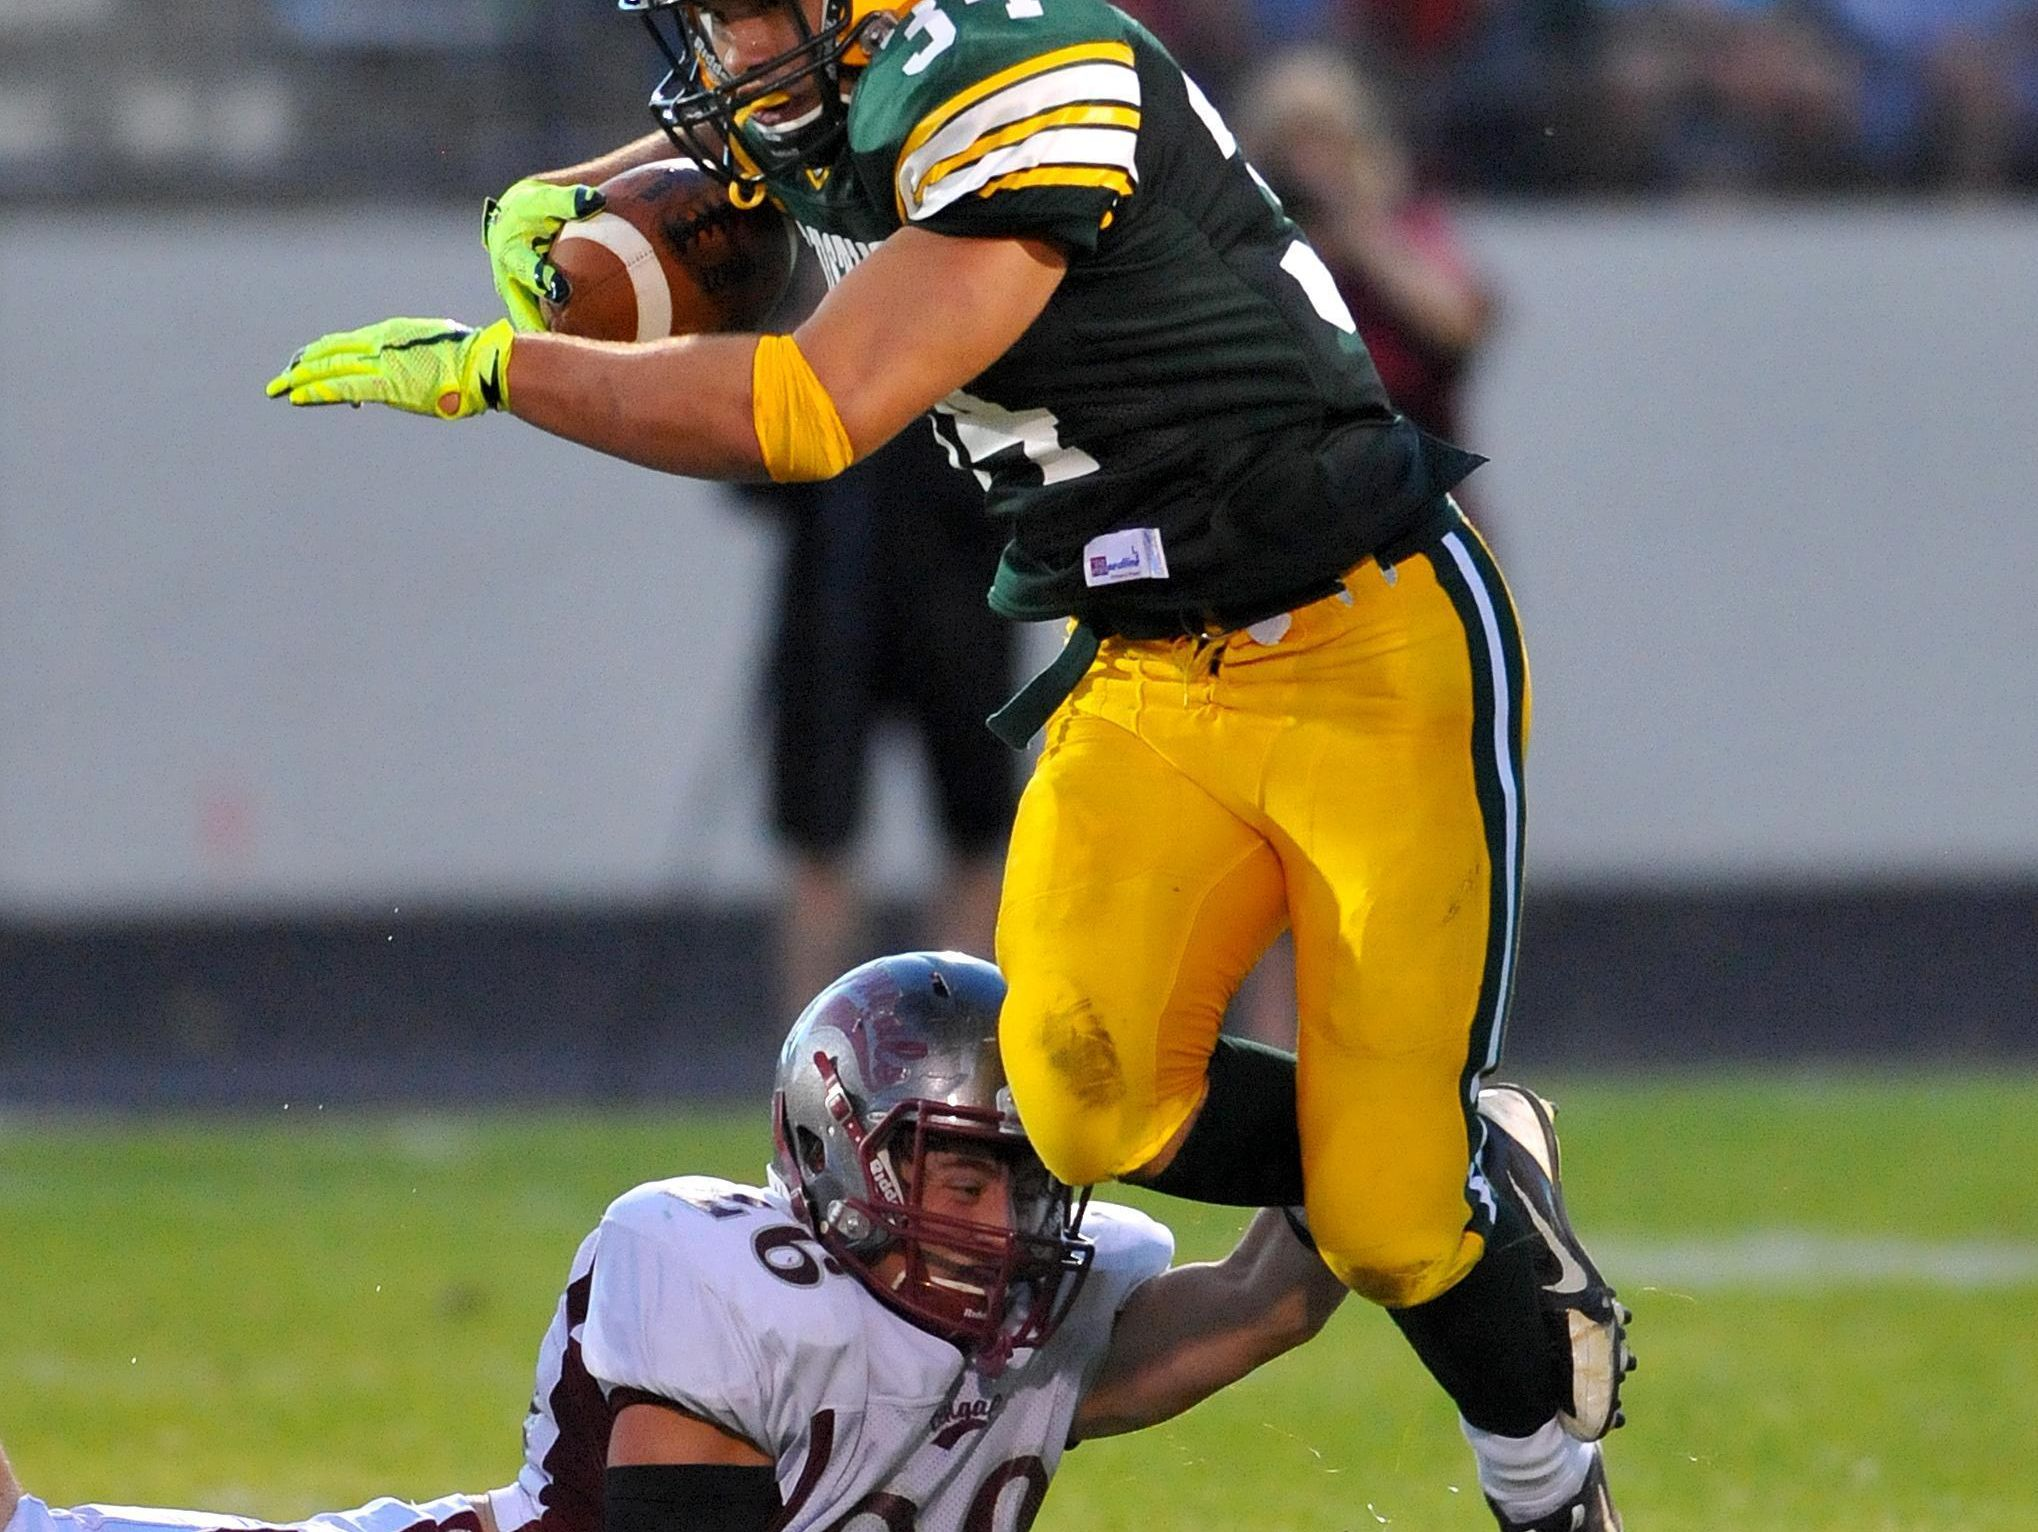 TRIBUNE PHOTO/RION SANDERSC.M. Russell High tailback Andrew Grinde suffered a shoulder injury during the first half of Friday's game against Billings Senior. CMR's Andrew Grinde avoids Helena High defender Taustin Hauk as he looks for running room during Friday night's game at Memorial Stadium.